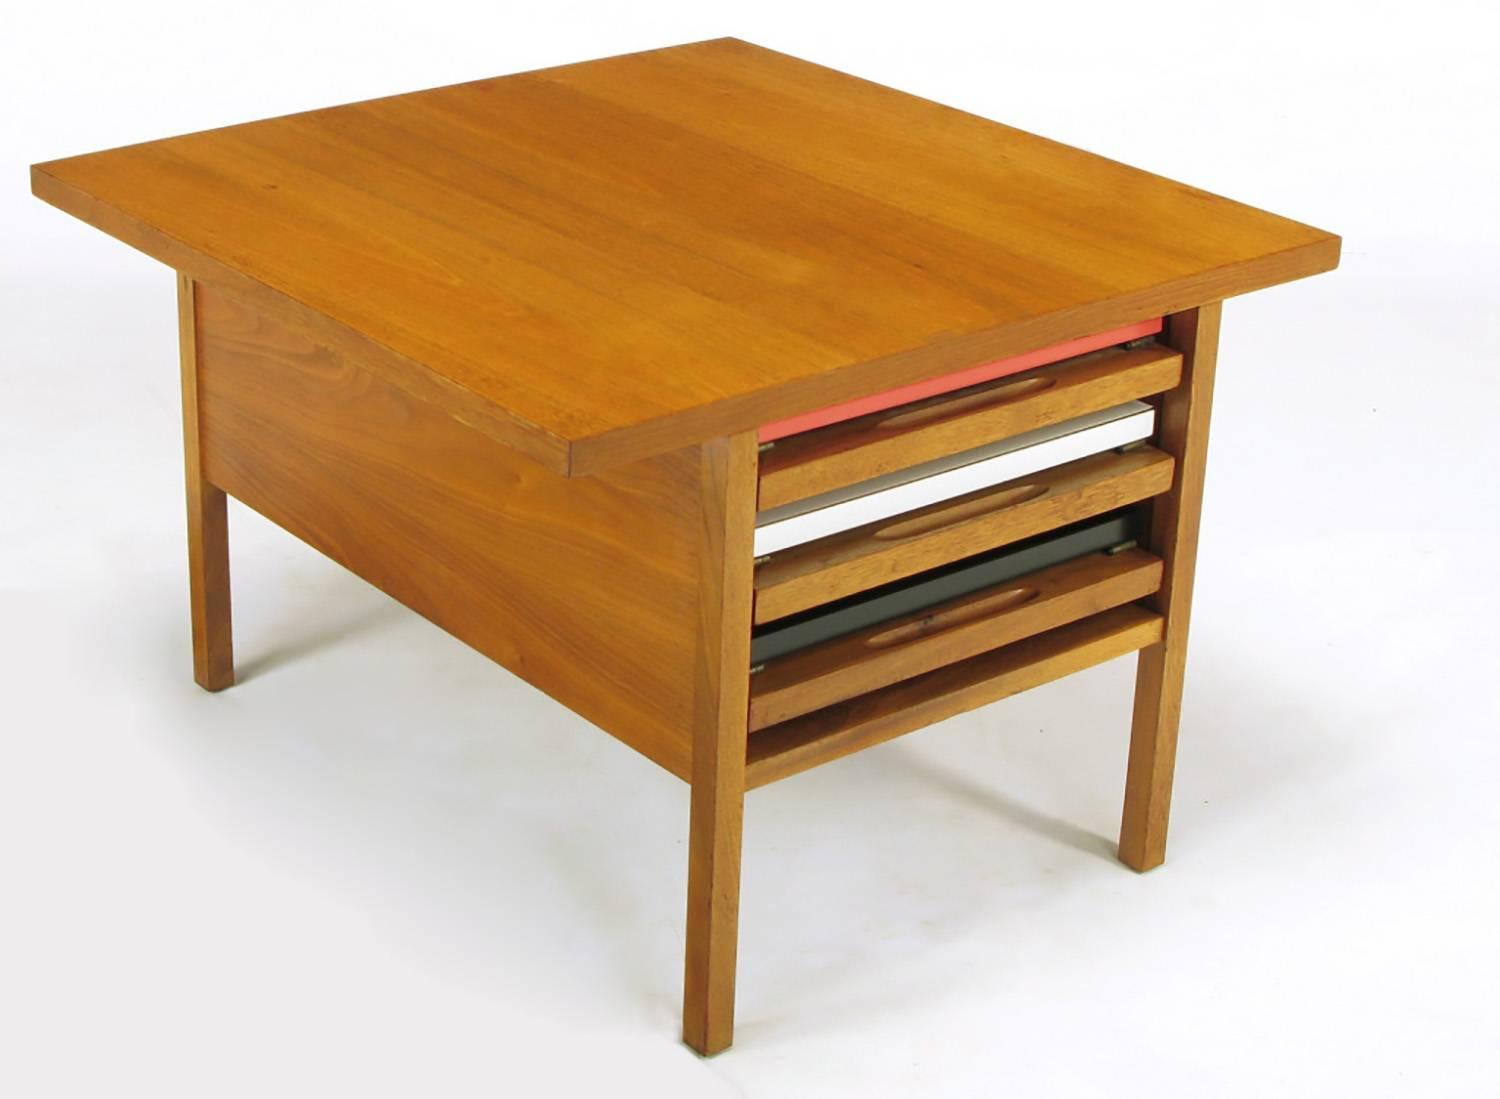 John Keal Walnut Coffee Table With Three Folding Side